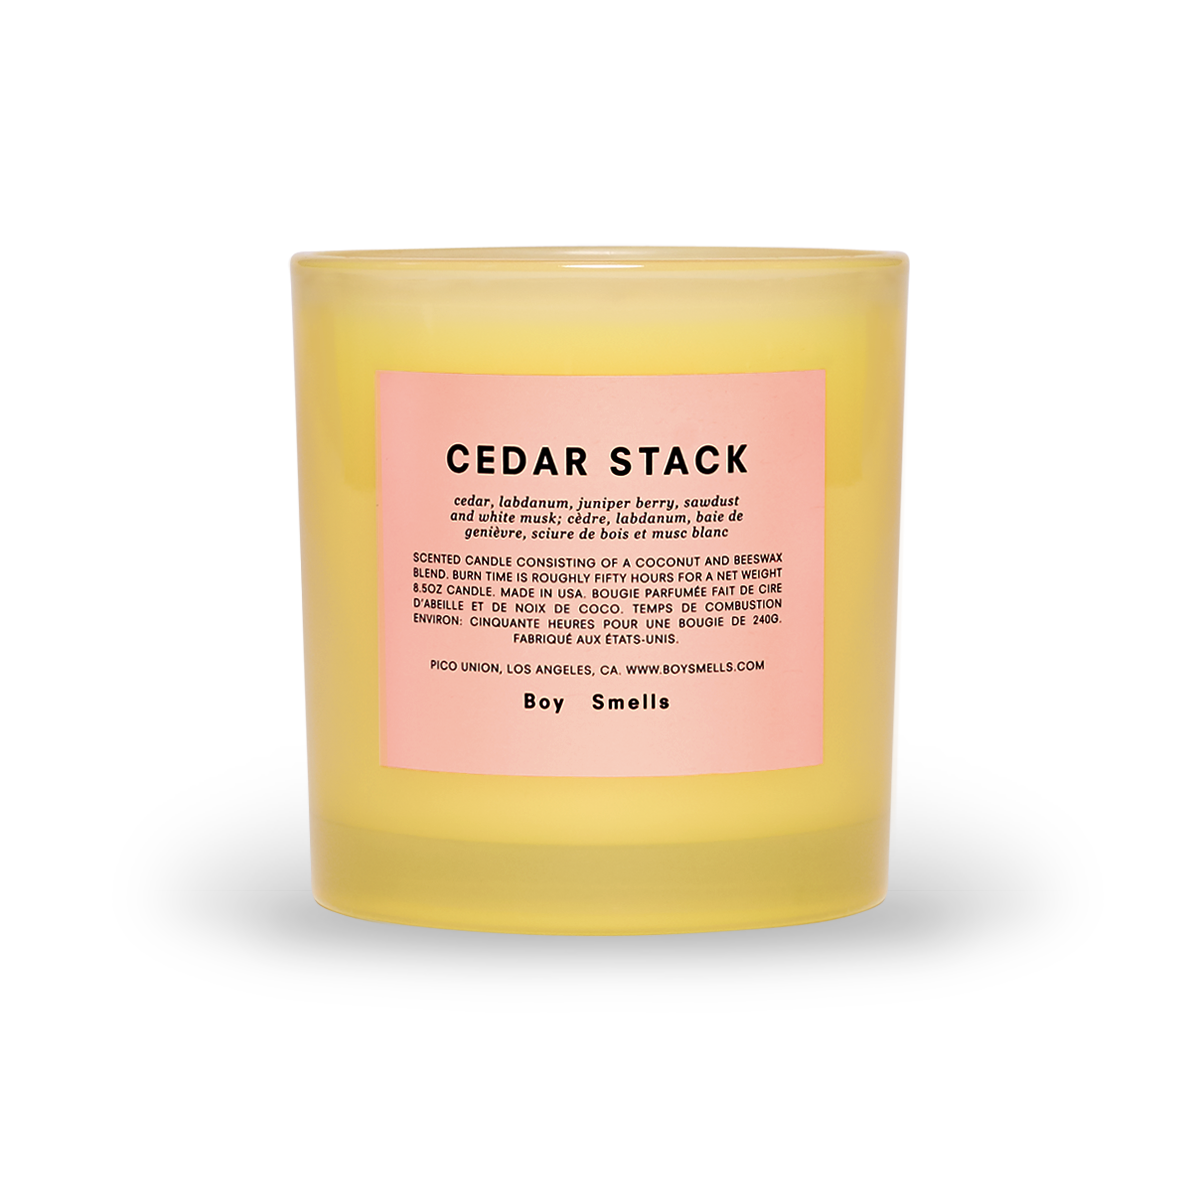 Boy Smells - PRIDE CEDAR STACK